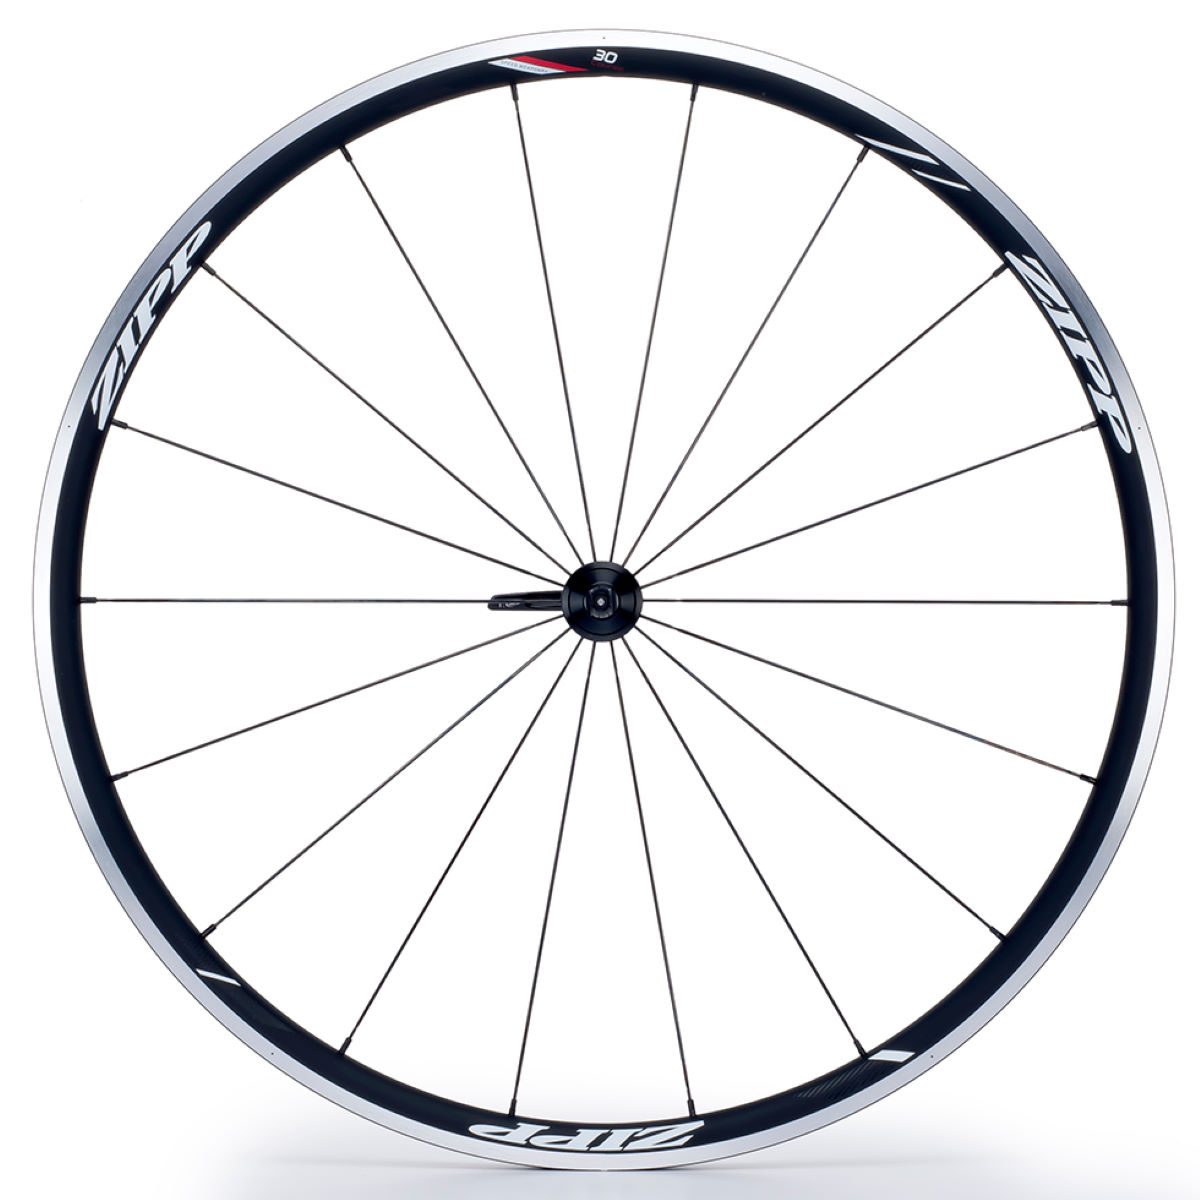 Boyau avant Zipp 30 Course (alliage) - 700c - Tubular Noir Roues performance